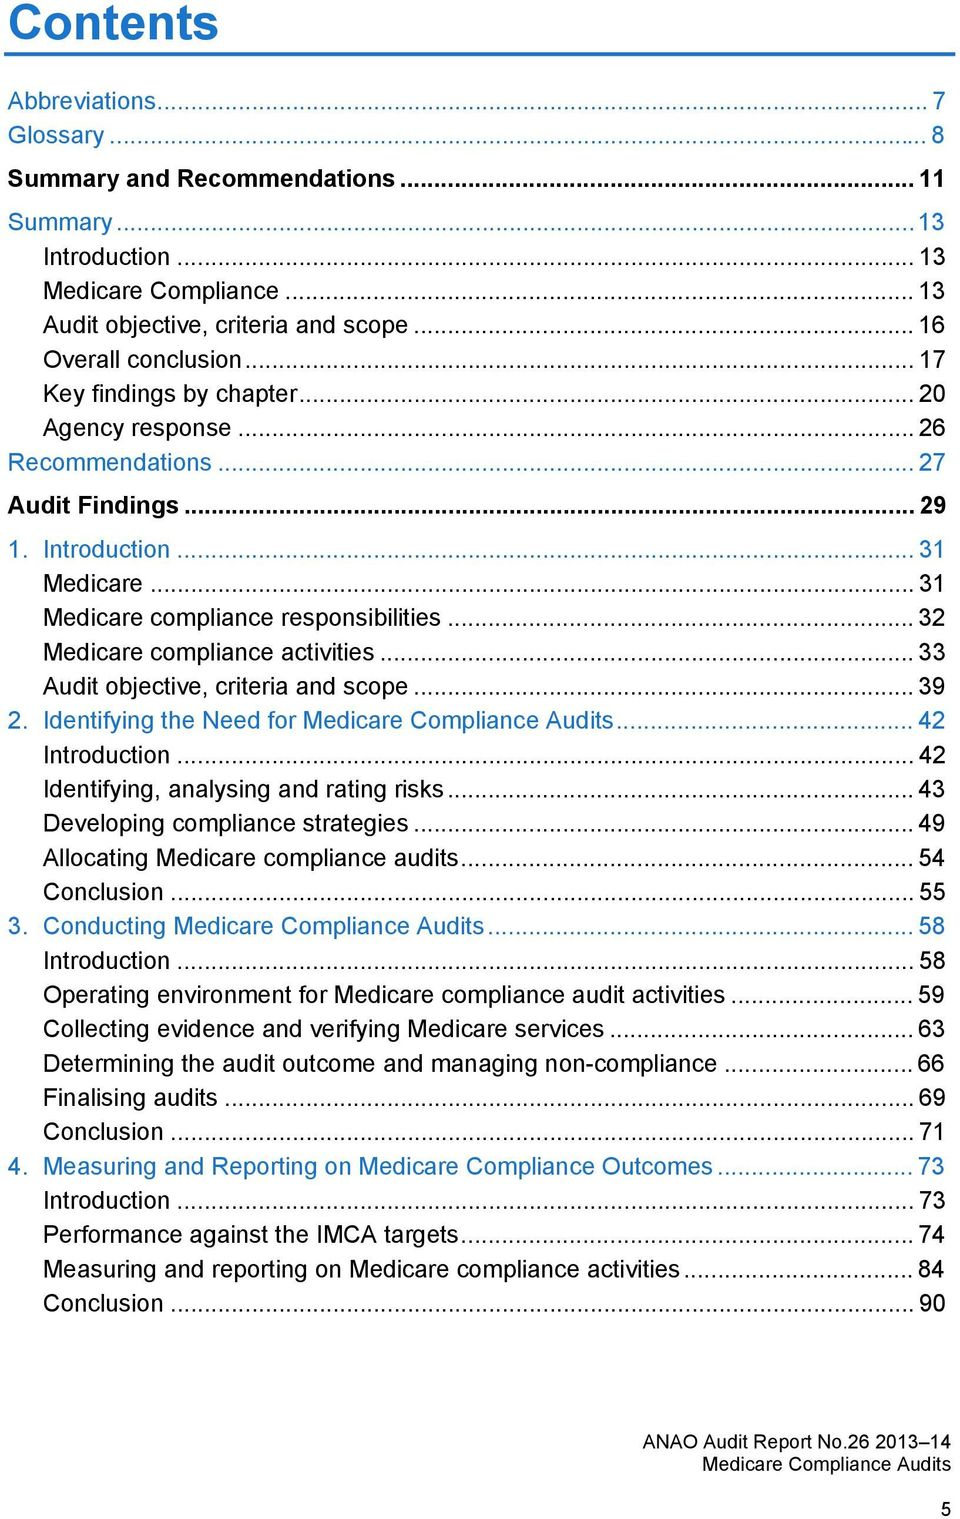 .. 32 Medicare compliance activities... 33 Audit objective, criteria and scope... 39 2. Identifying the Need for... 42 Introduction... 42 Identifying, analysing and rating risks.